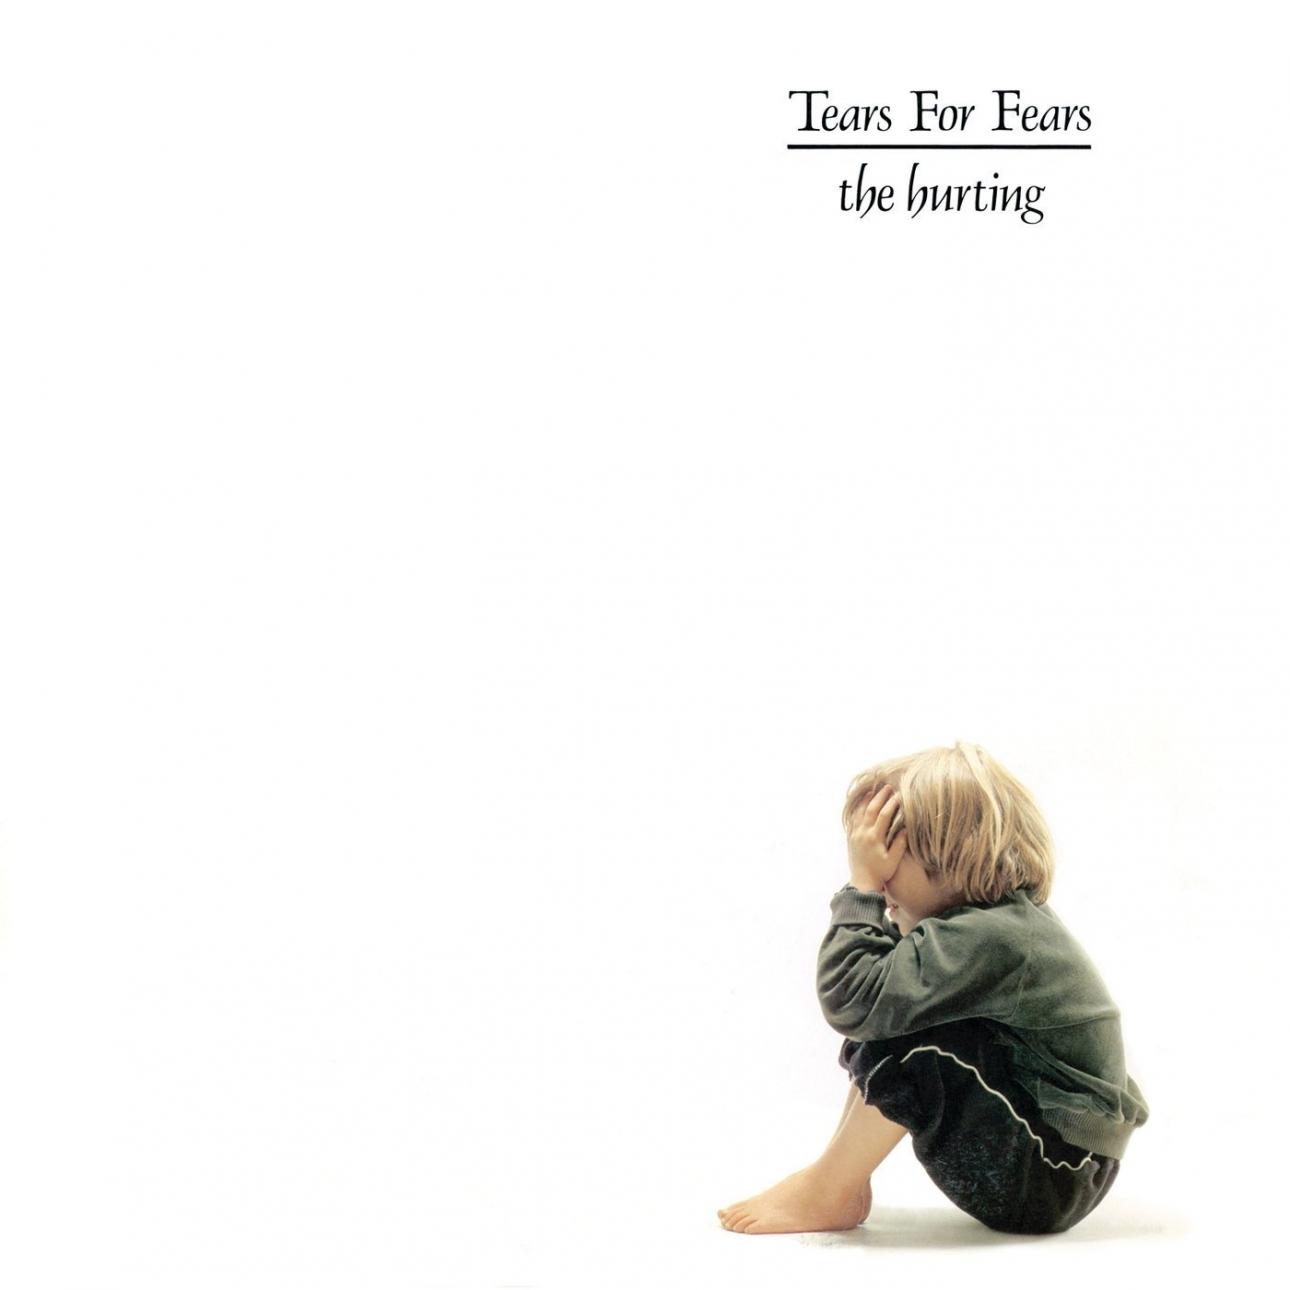 Tears for Fears - The hurting - YouTube